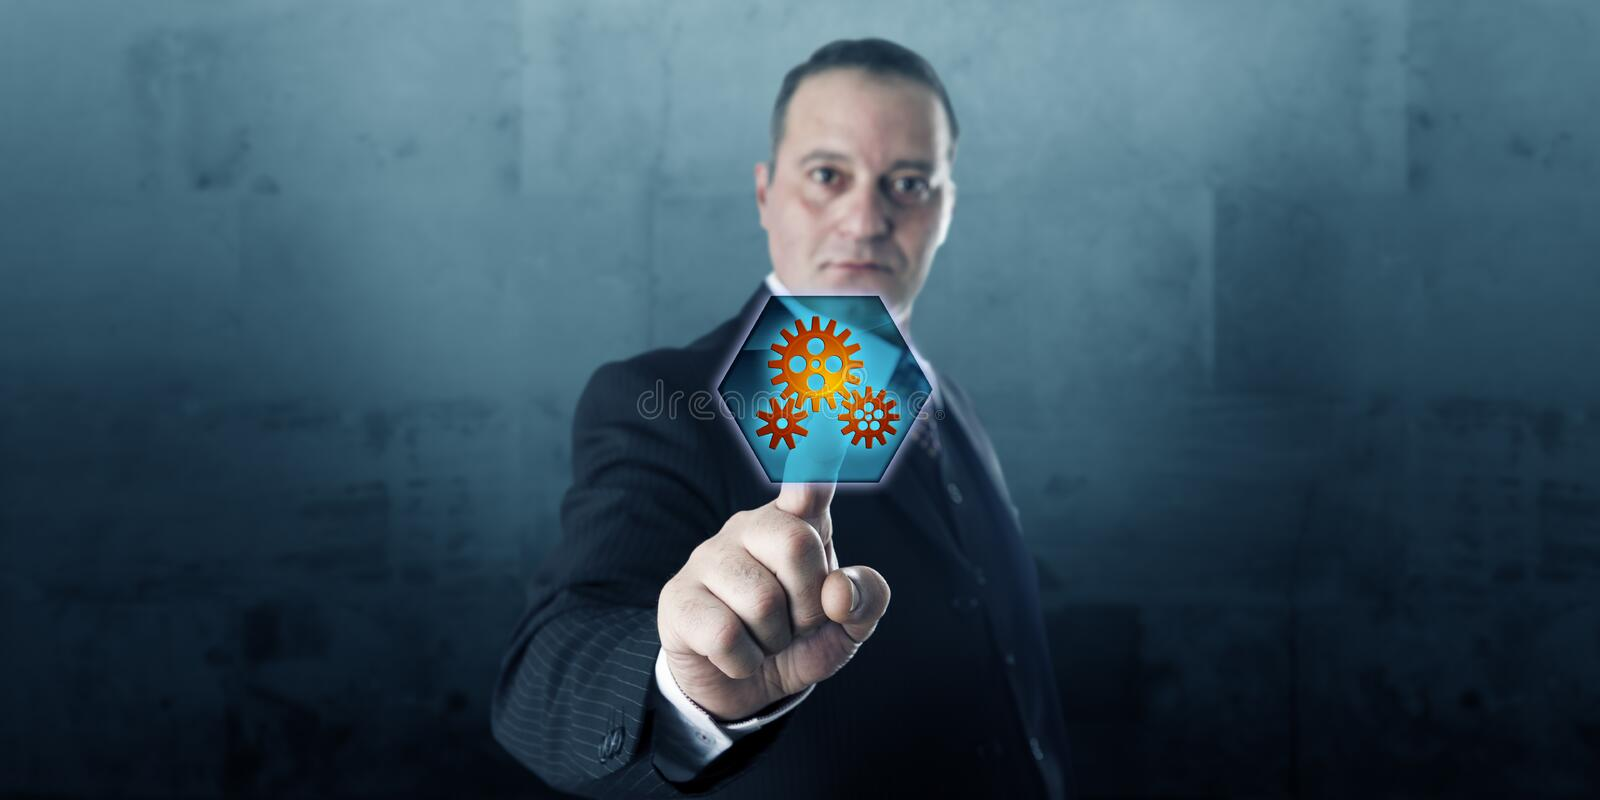 Entrepreneur Pressing Push Button With Cog Wheels. Male entrepreneur is pressing a hexagonal push button displaying three gear wheels. The virtual icon is royalty free stock images